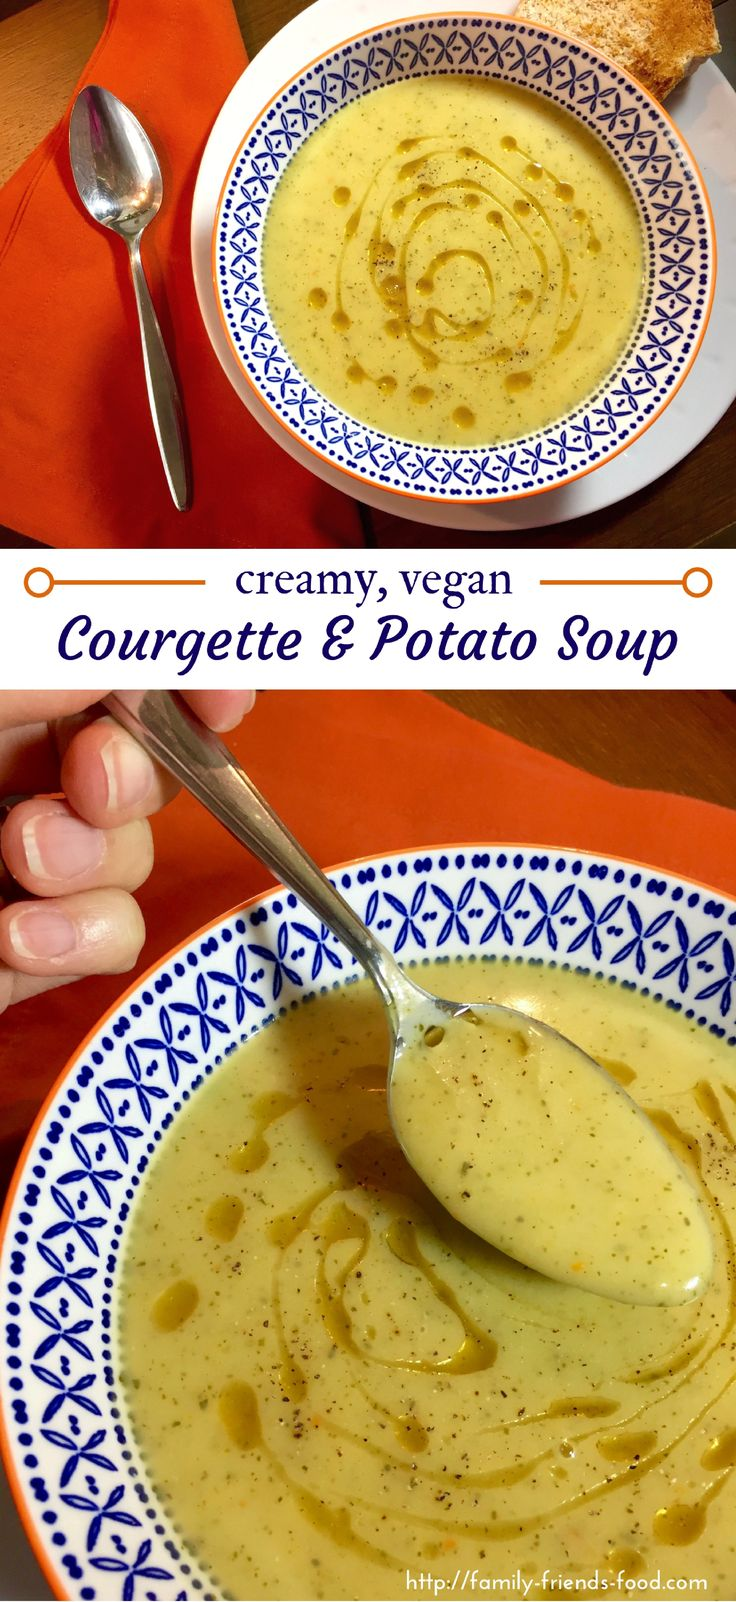 This wonderfully warming, fragrant courgette (zucchini) & potato soup is perfect for a cold day! Enjoy with hot toast for a lovely lunch or supper. #veganuary #vegan #healthyfood